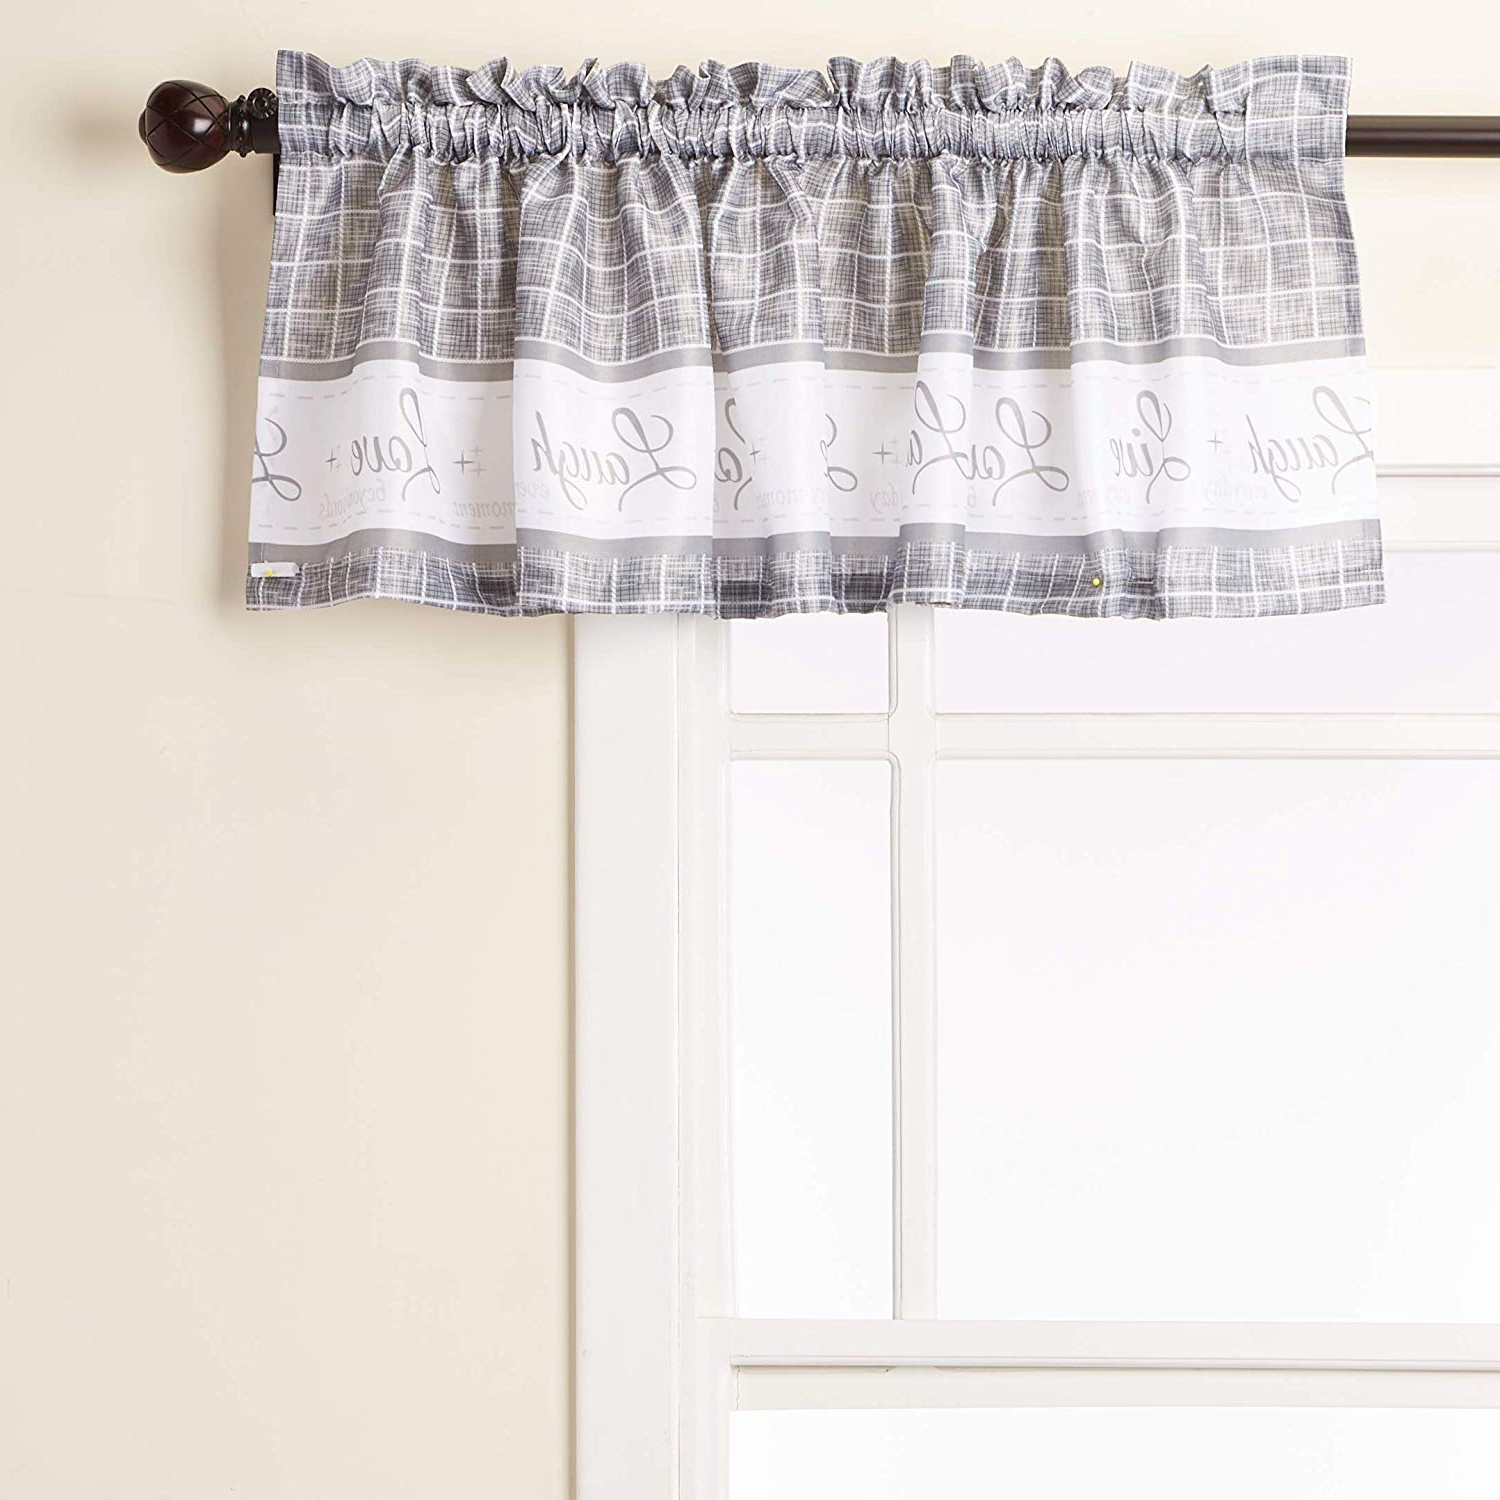 Live, Love, Laugh Window Curtain Tier Pair And Valance Sets Intended For Most Recently Released Achim Live, Love, Laugh Window Curtain Tier Pair And Valance (Gallery 2 of 20)